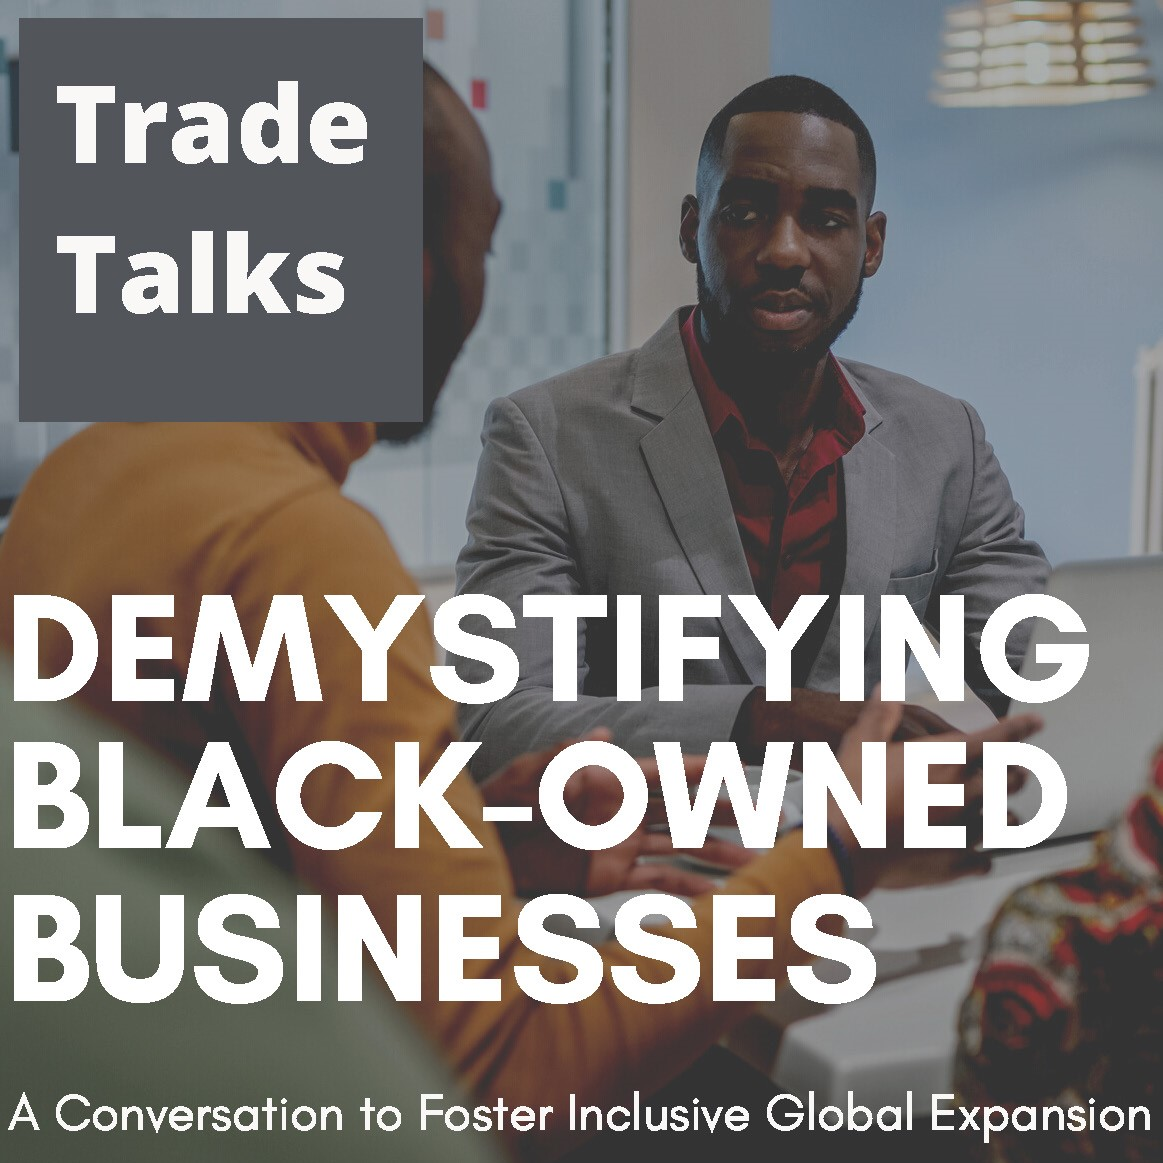 Trade Talks – Demystifying Black-Owned Businesses: A Conversation to Foster Inclusive Global Expansion